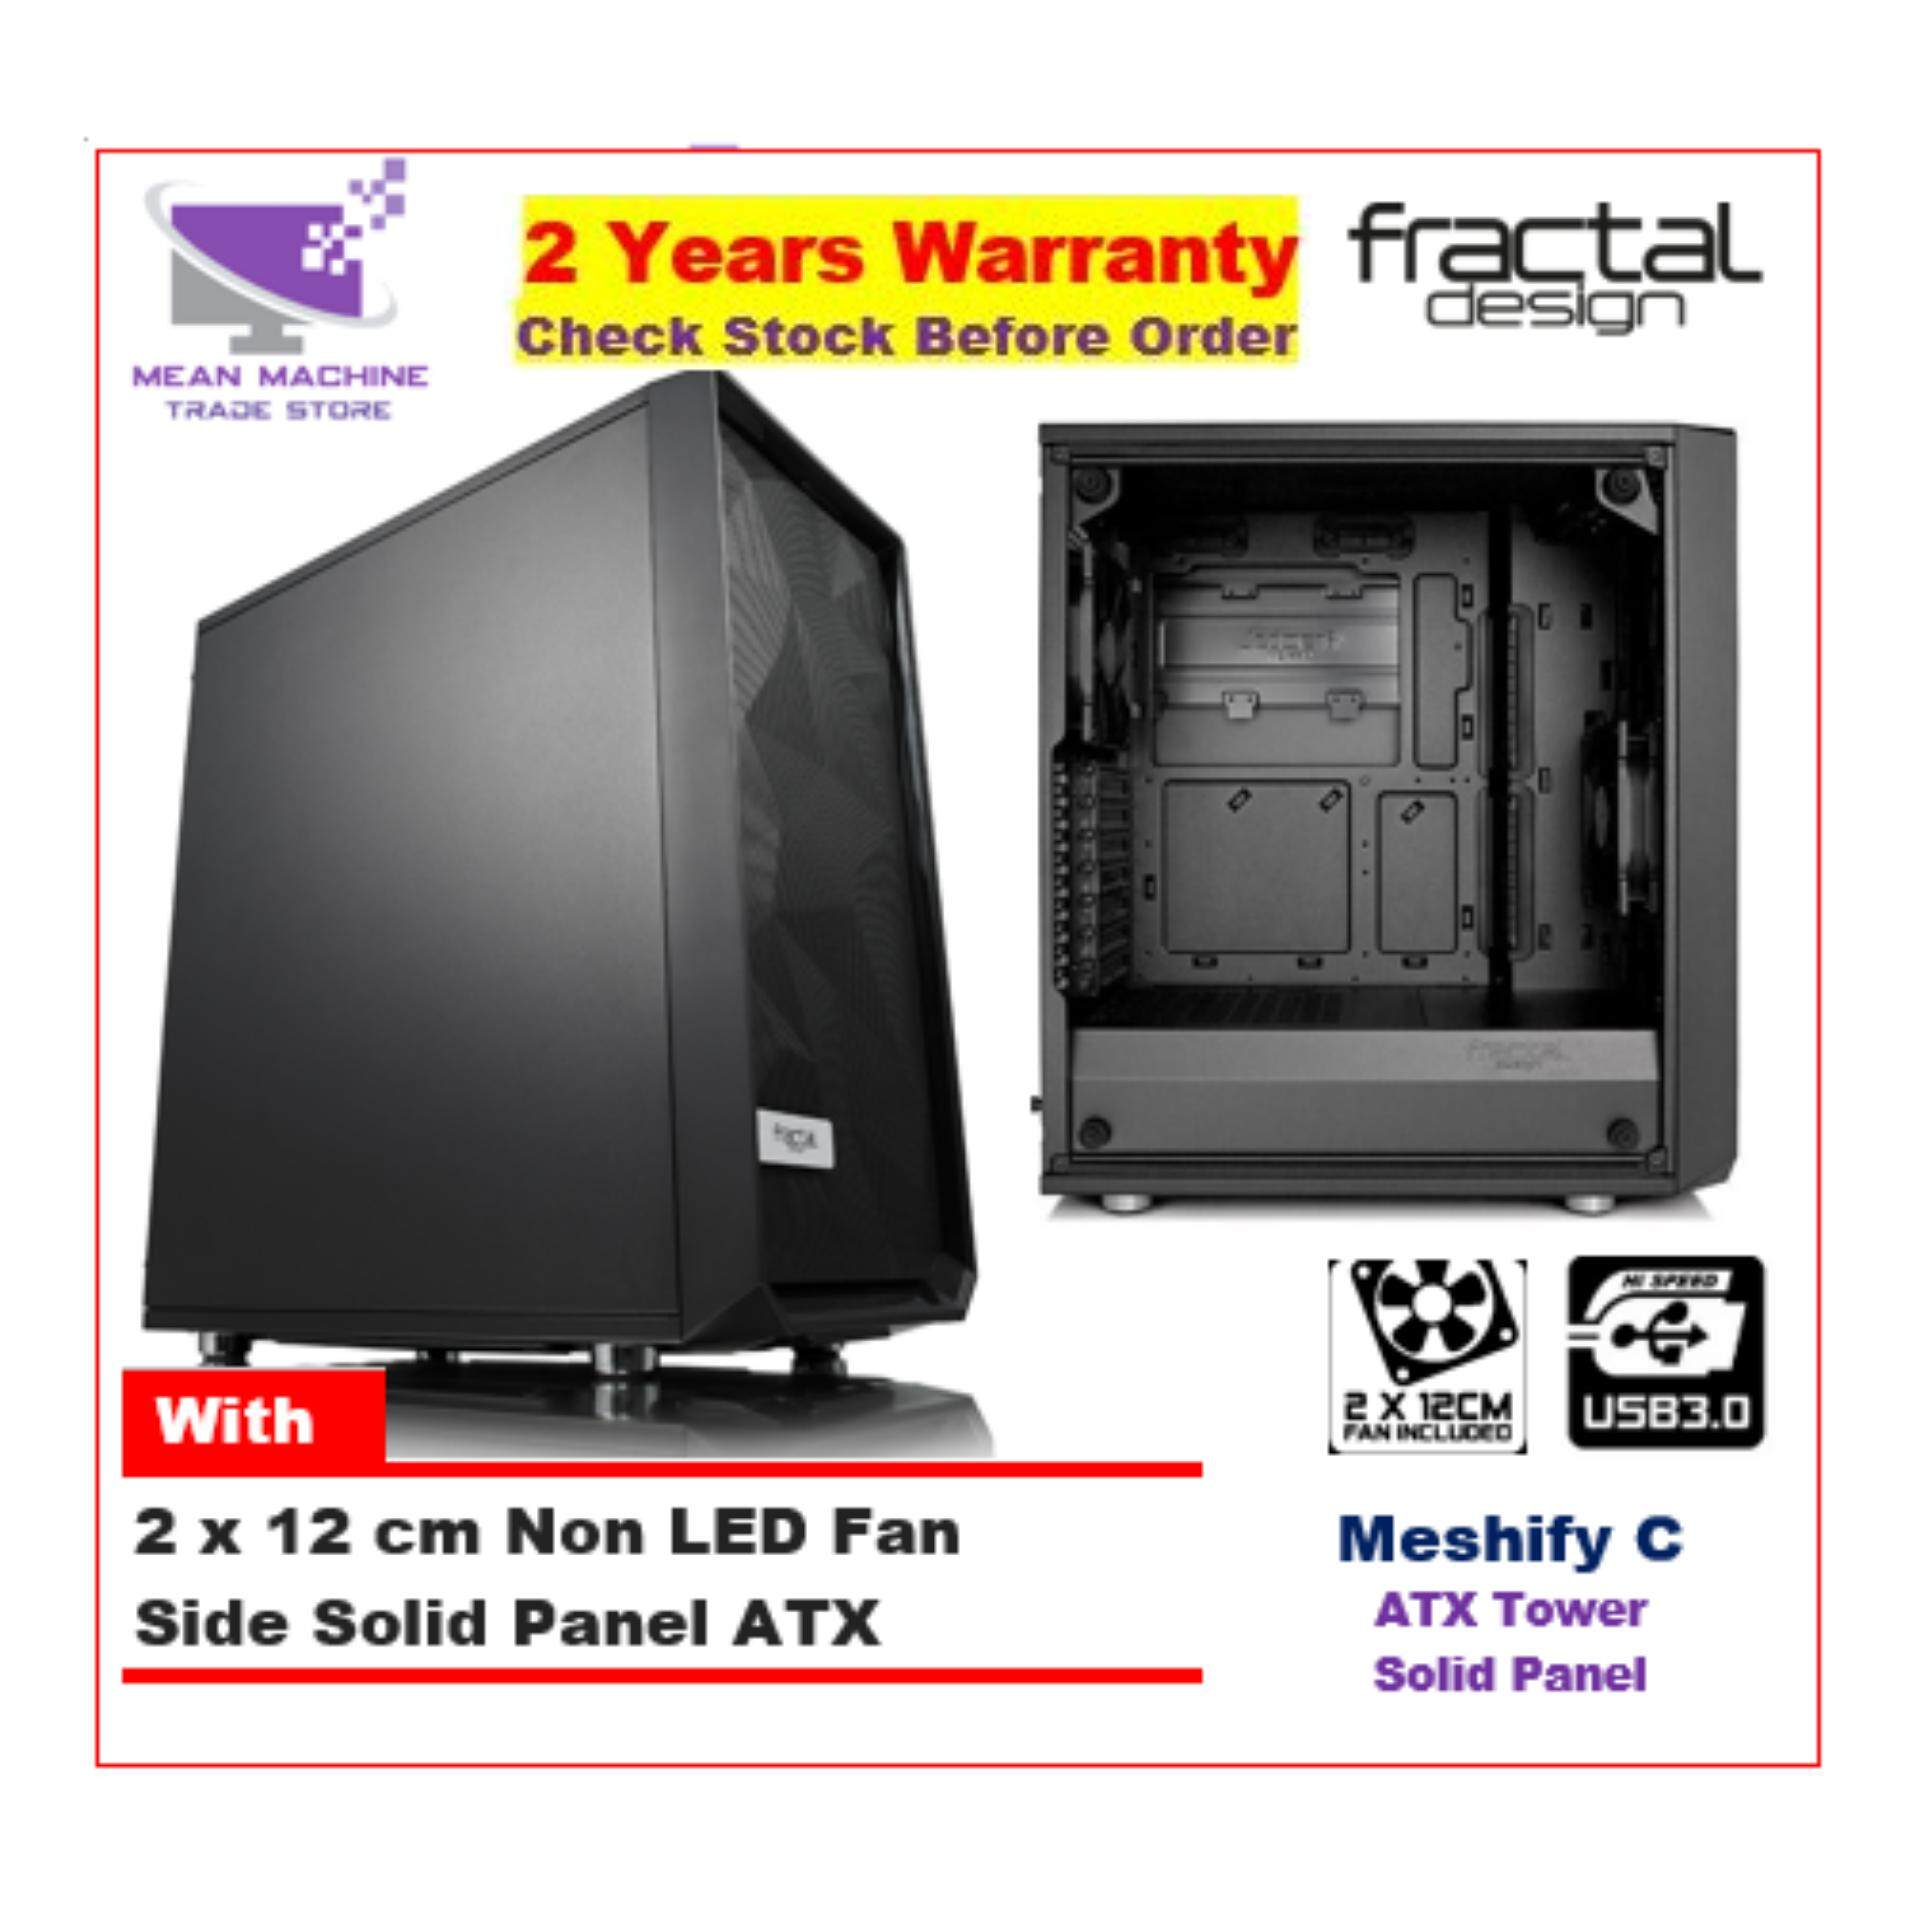 #Fractal Design Meshify C Solid Panel Black ATX Chassis (With 2 X 12cm Fan) # Malaysia